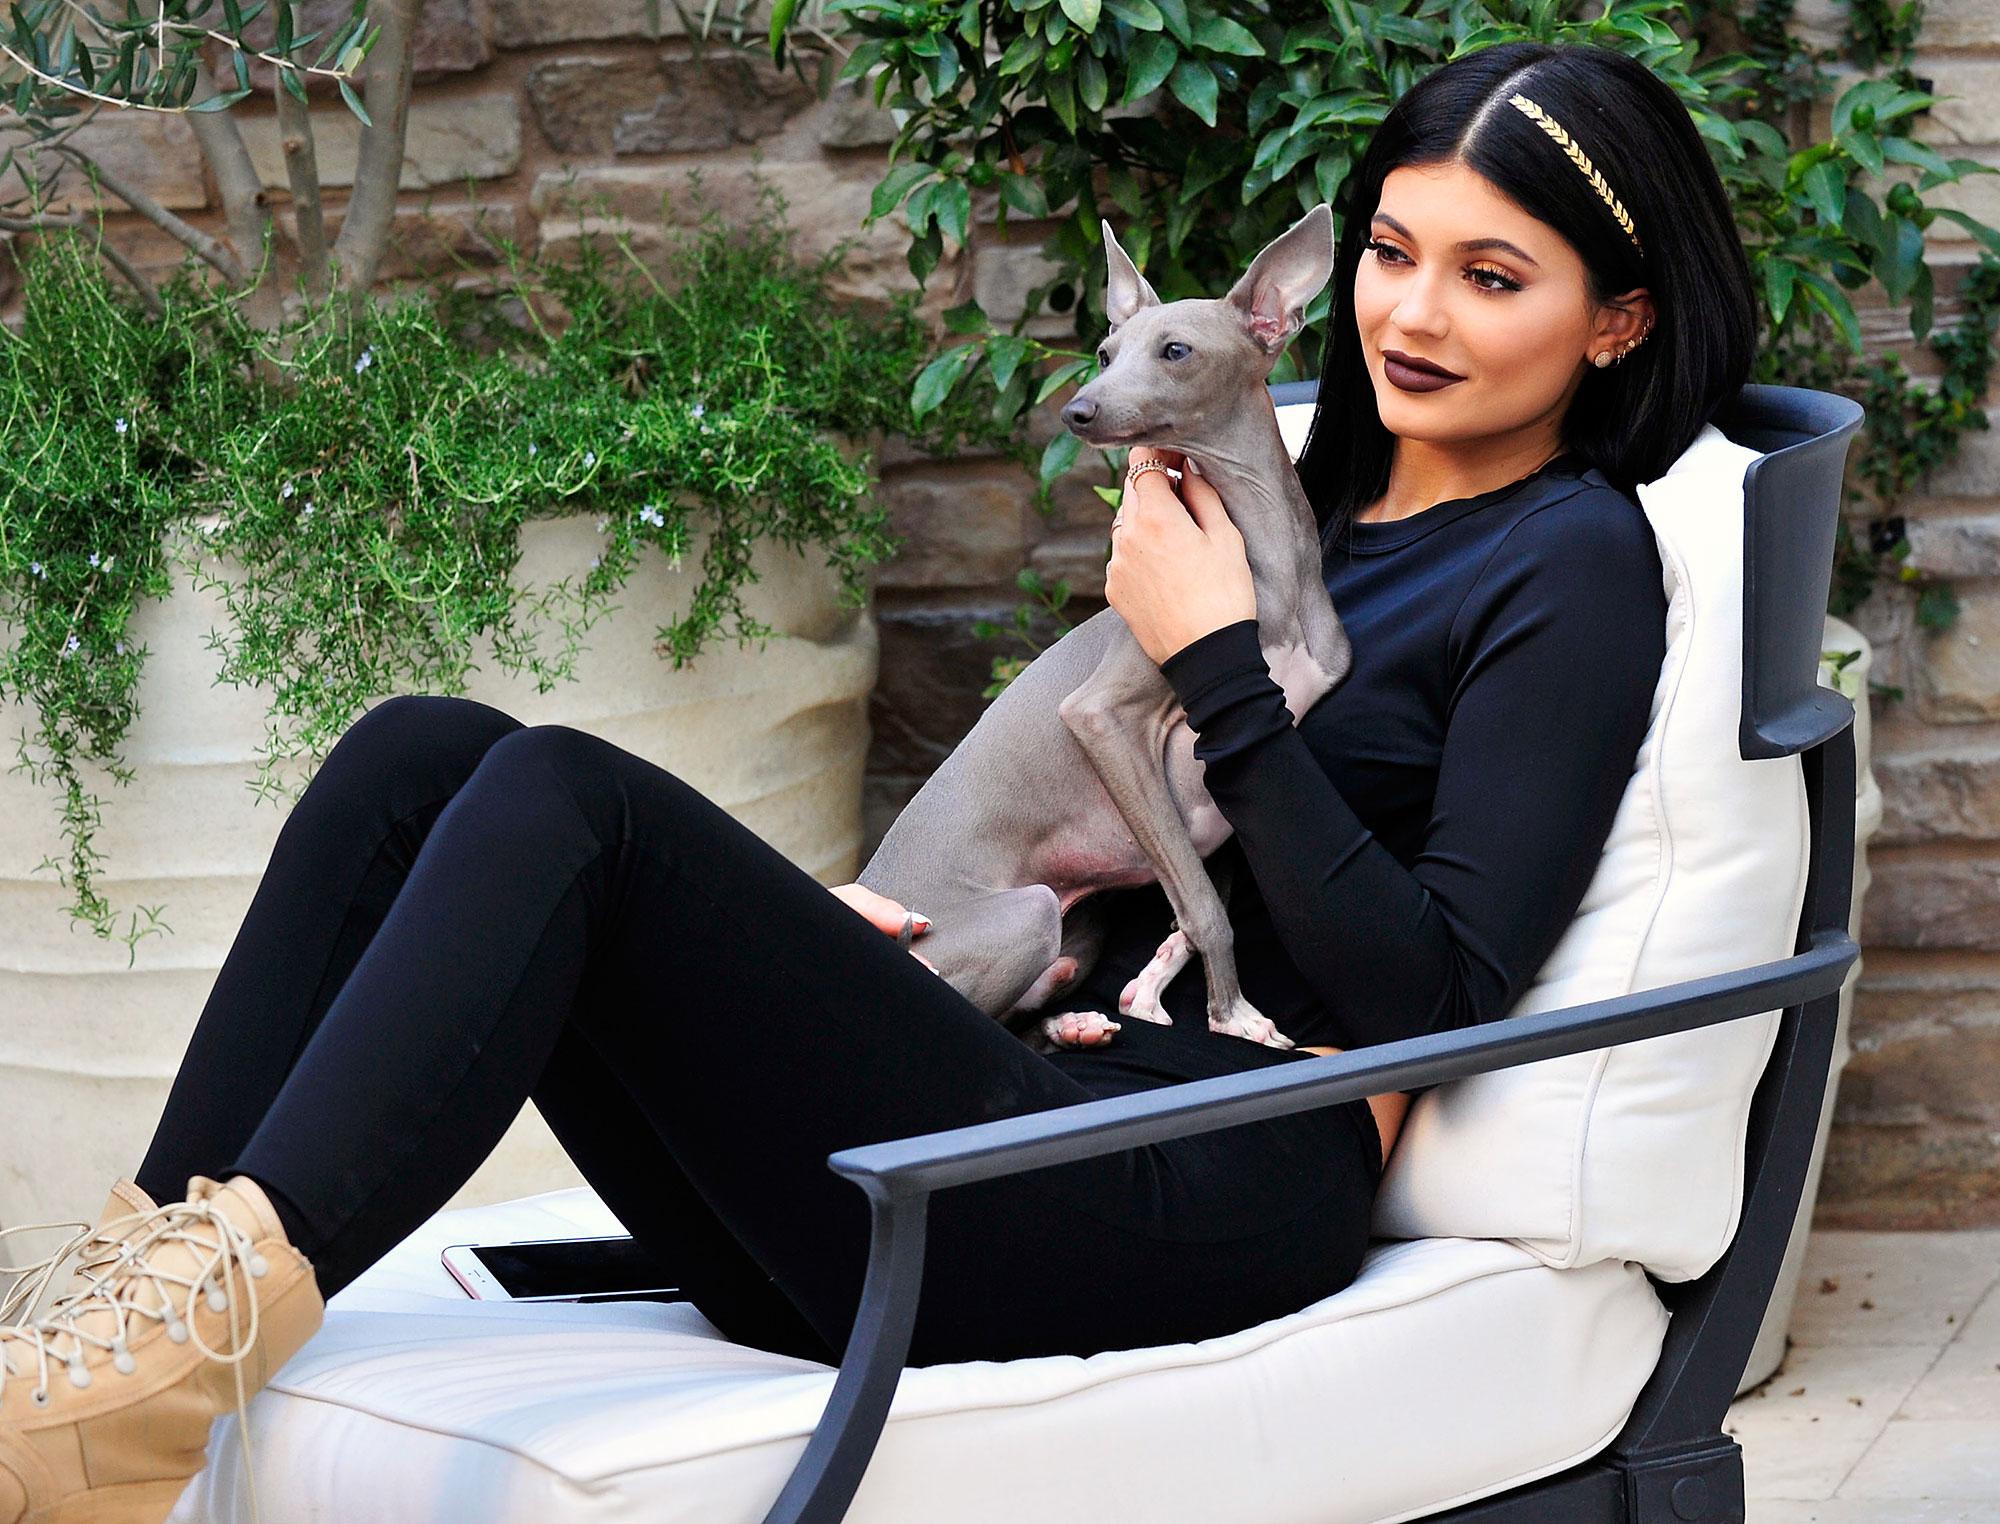 Where Is Norman? Kylie Jenner Reveals What Happened to Her Dog